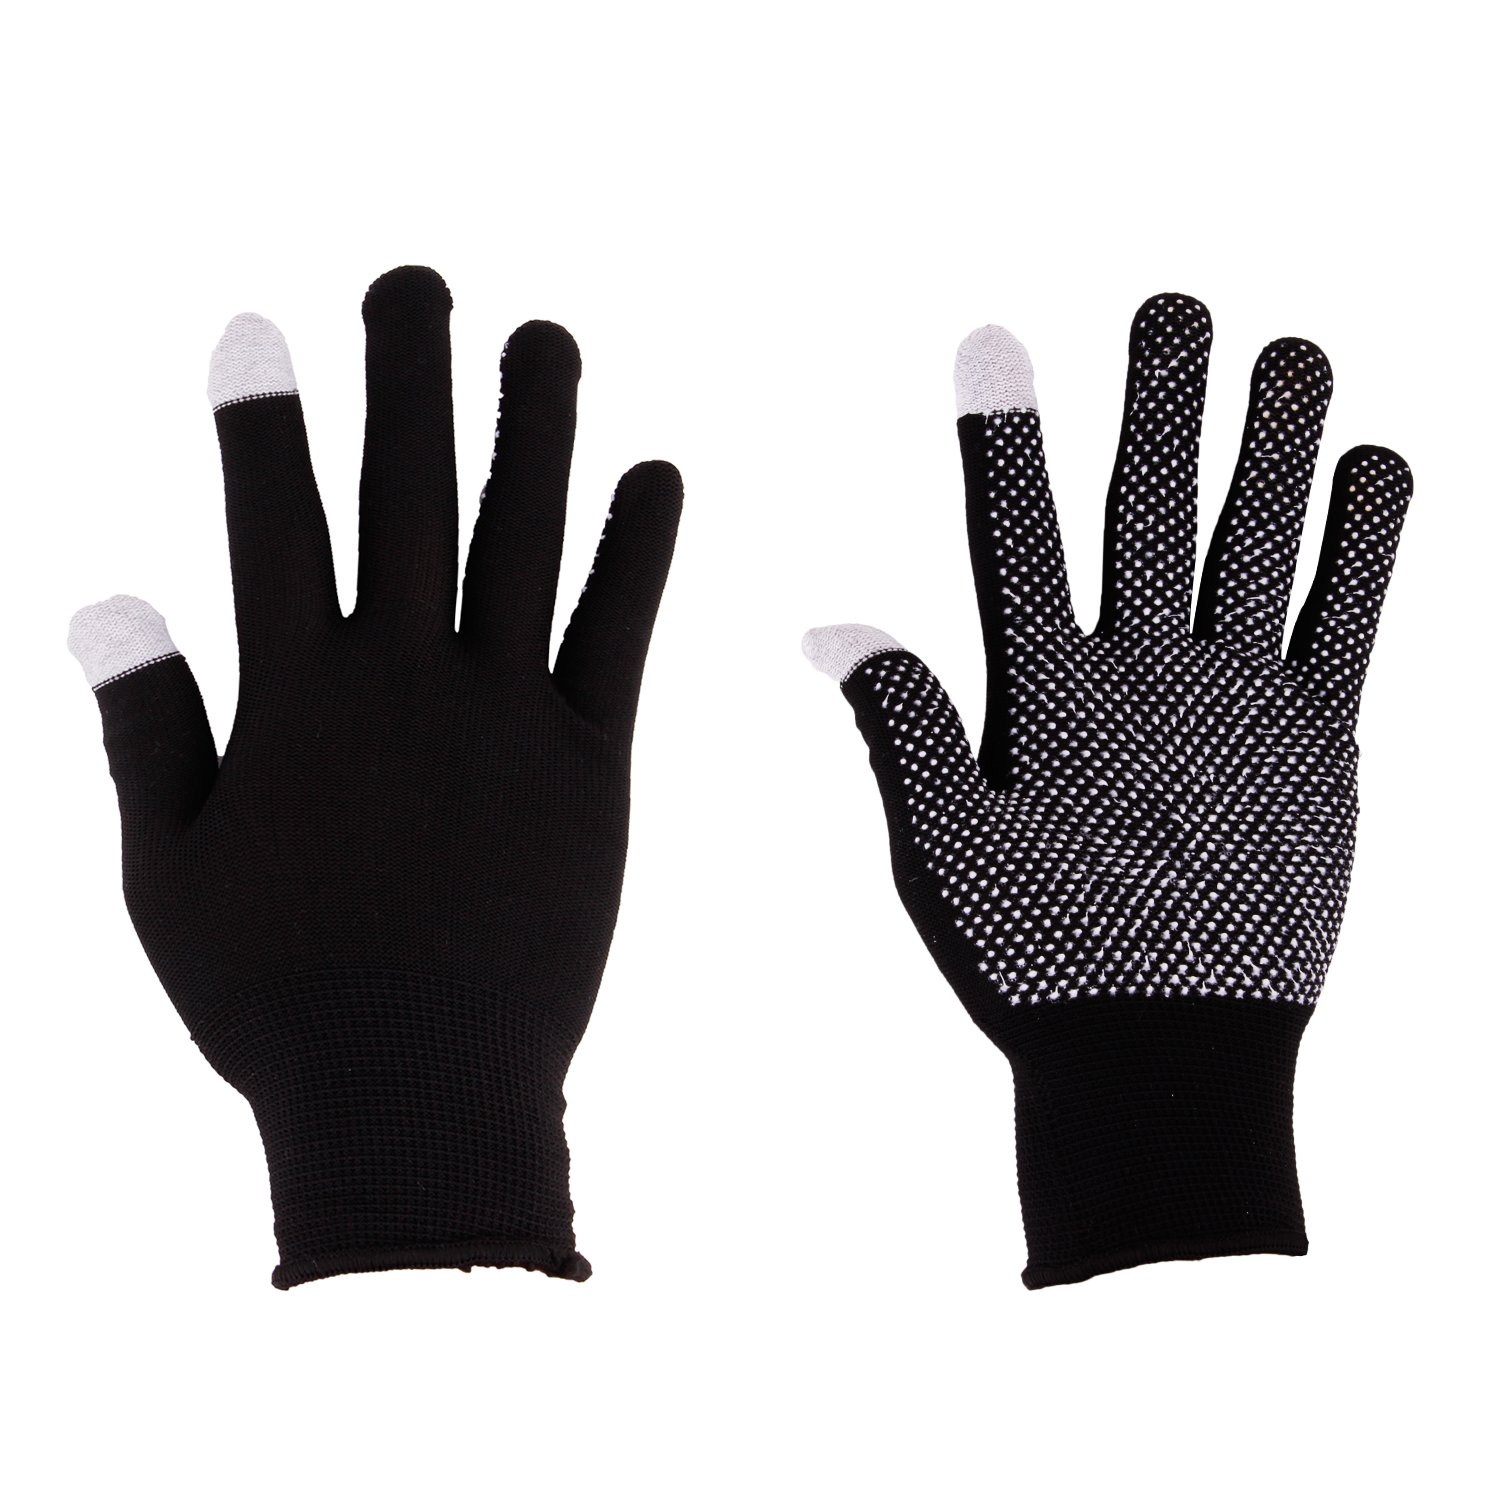 Unisex Driving Gloves for Women Men Screen Touch Summer UV Protection Motorcycle Road Mountain Bike Riding Fitness Cycling Gloves Lightweight Breathable Antislip Touchscreen Fishing Golf Gloves